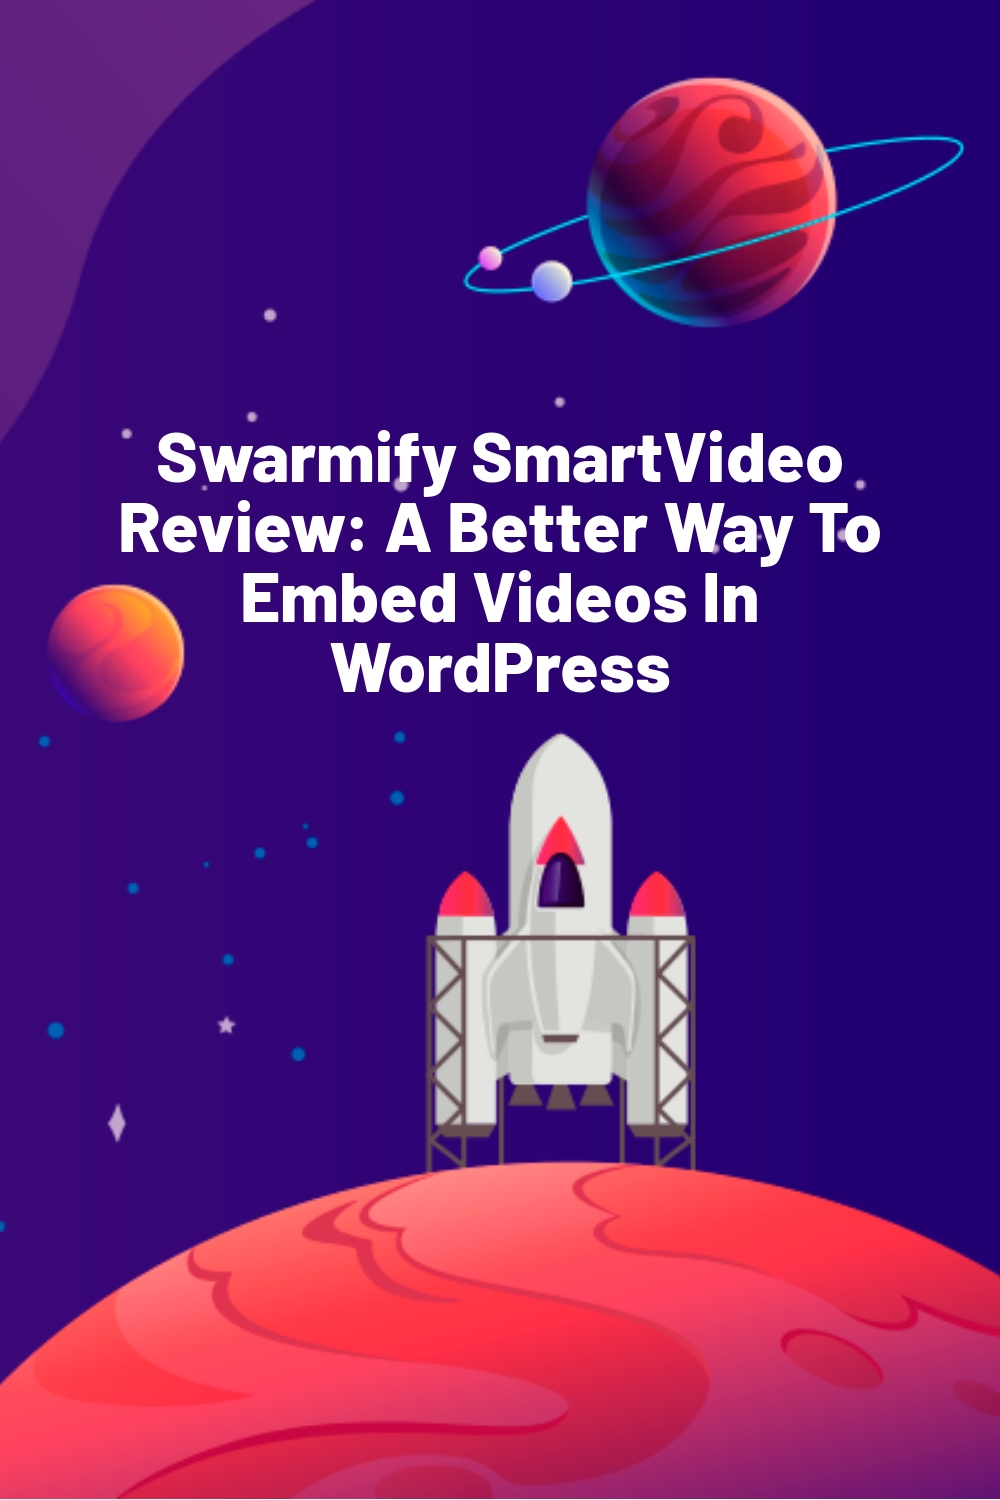 Swarmify SmartVideo Review: A Better Way To Embed Videos In WordPress